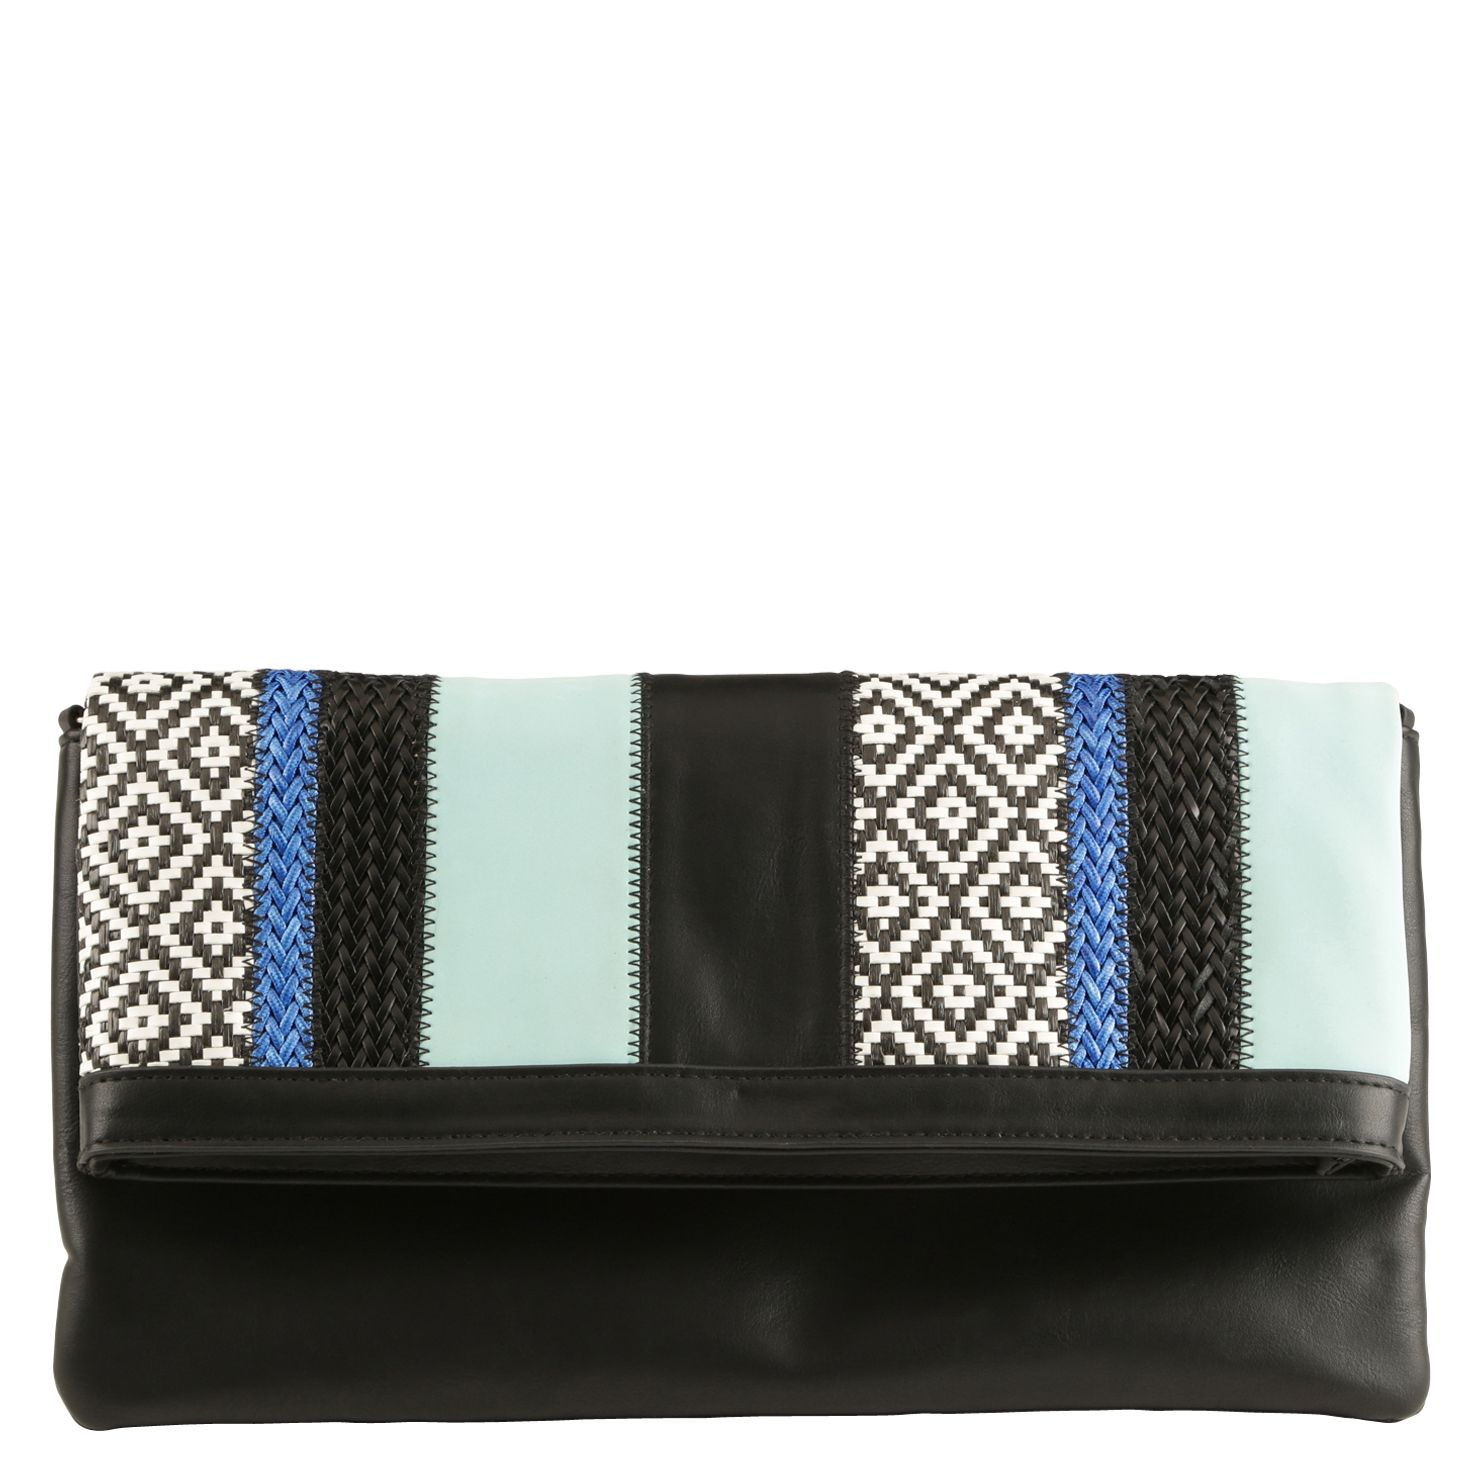 Somma multitone clutch bag